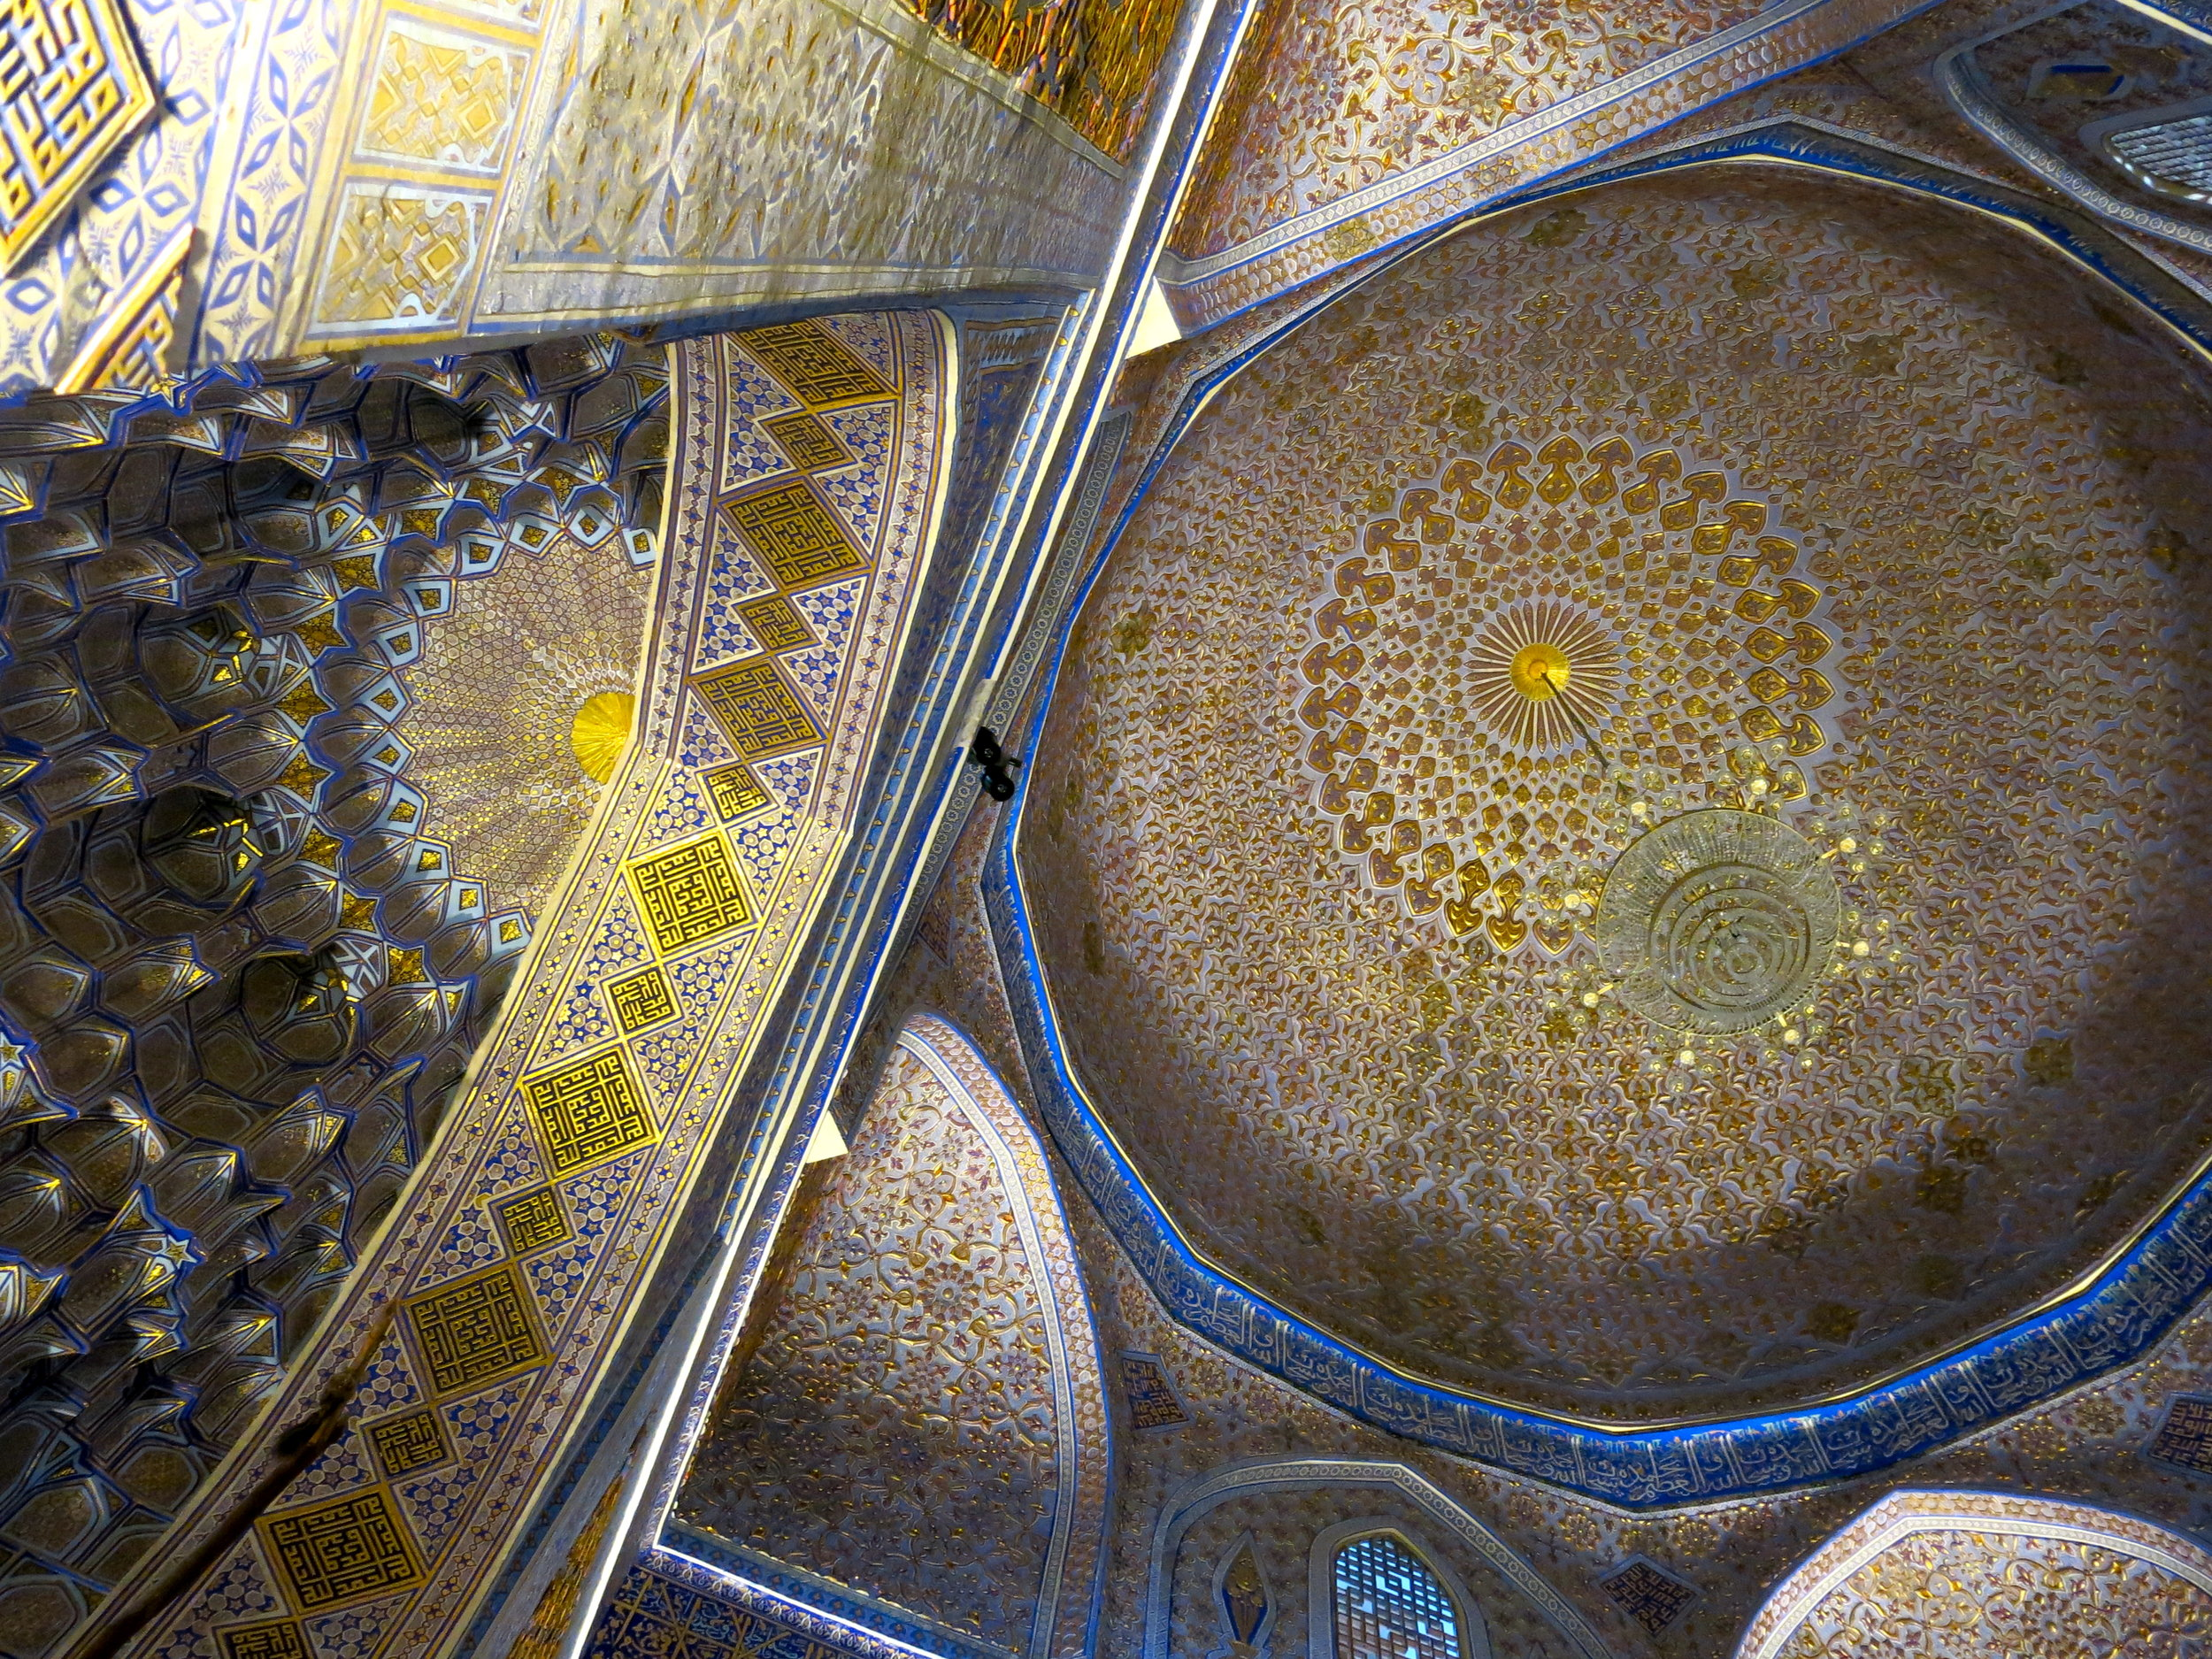 The richly decorated ceiling of the Gur-Emir mausoleum